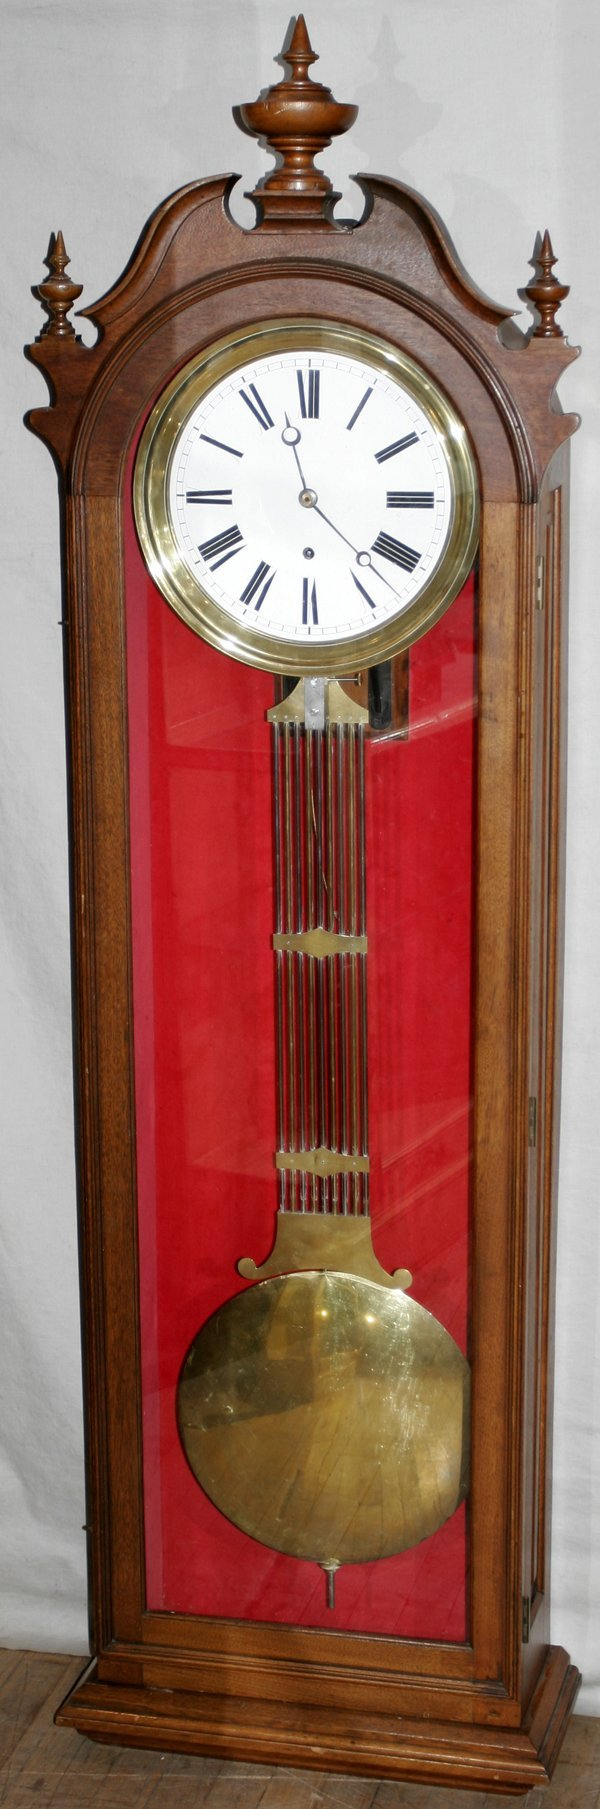 042021: VICTORIAN MAHOGANY GRANDMOTHER CLOCK